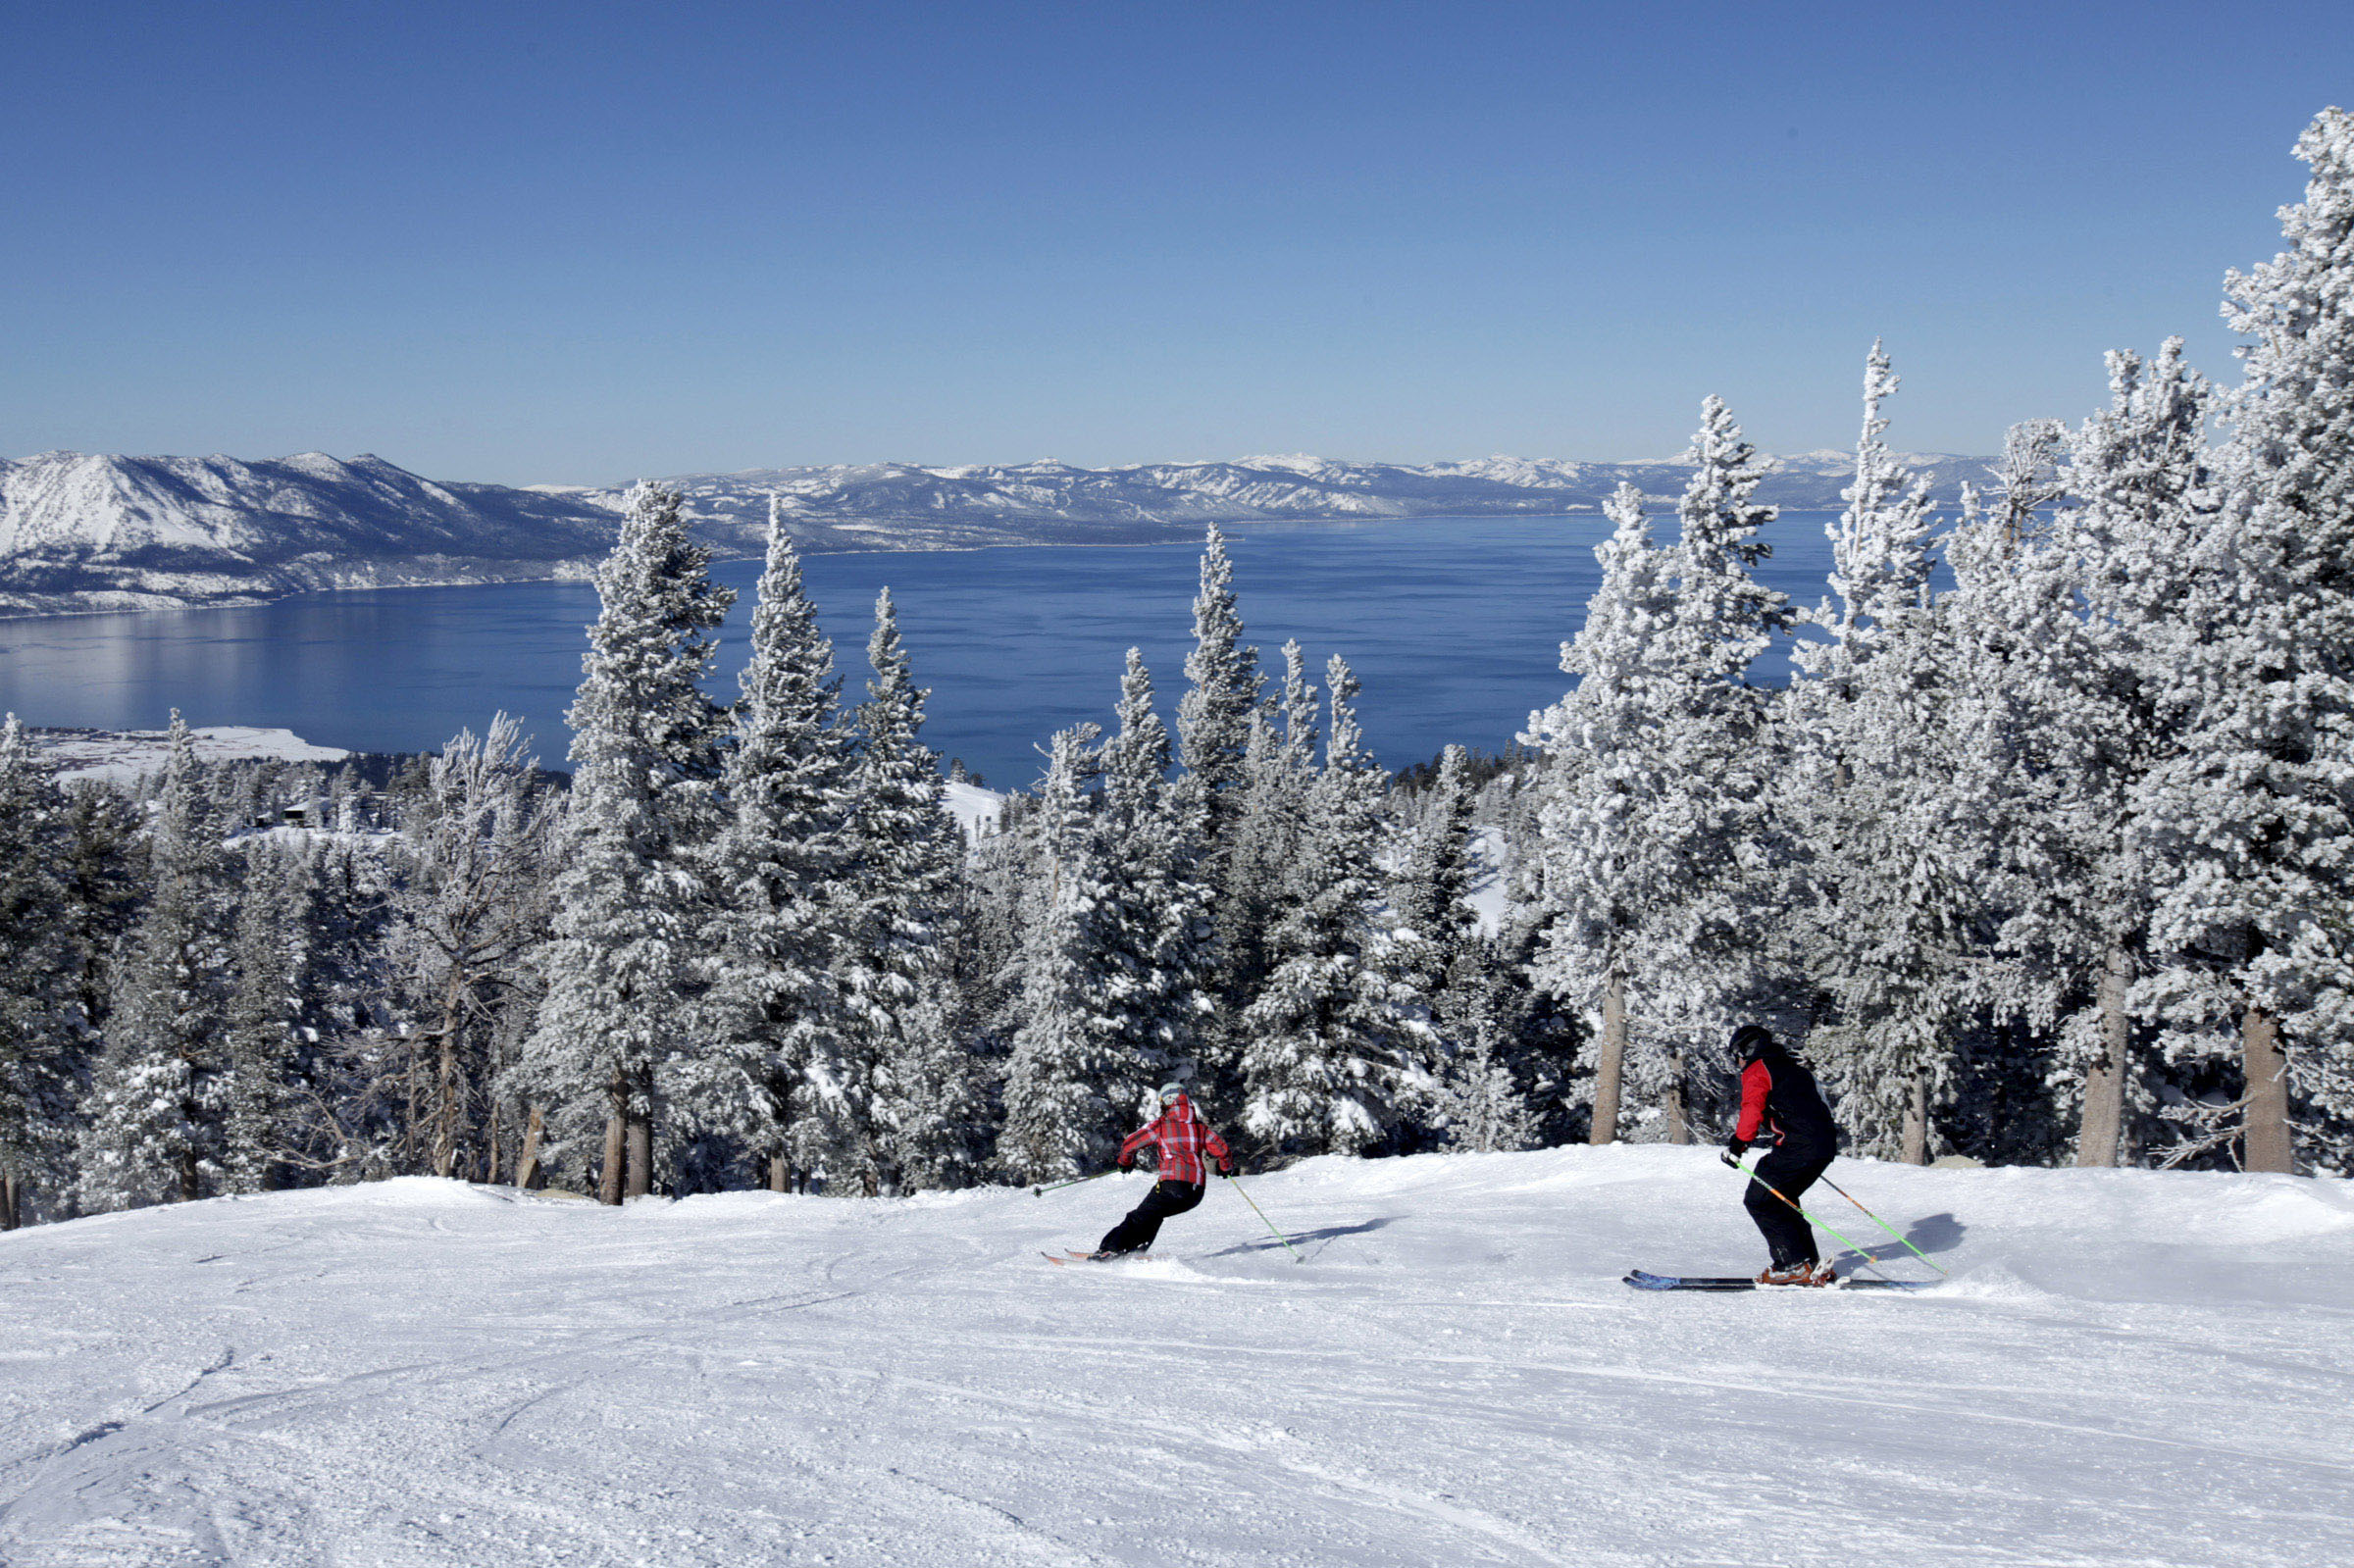 Ski Resorts With Most Snow